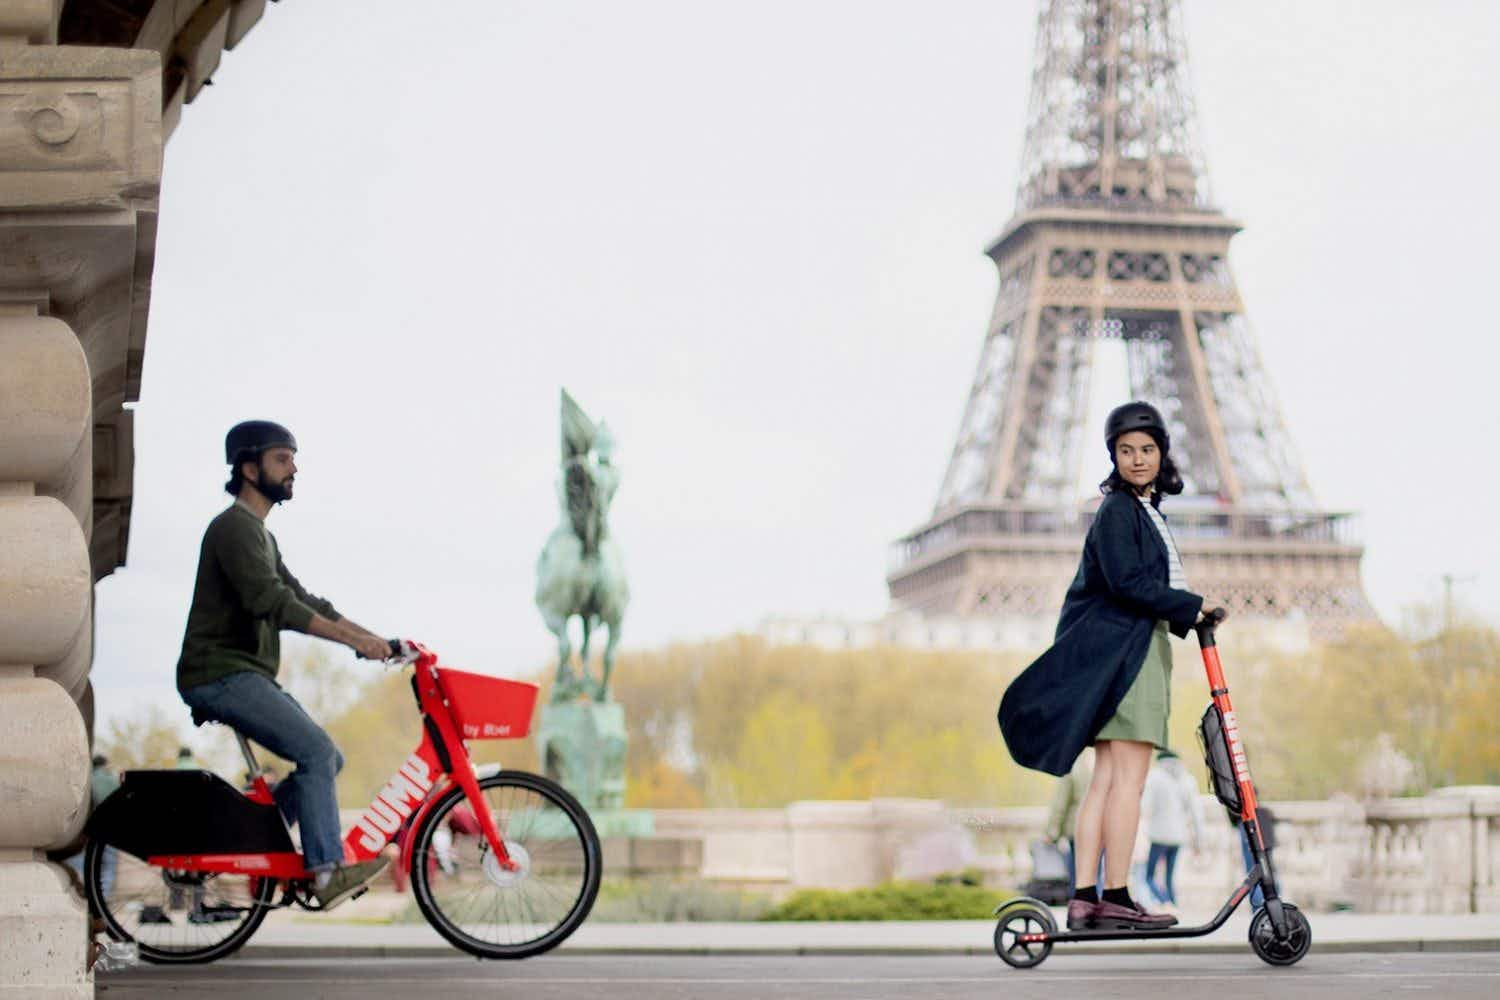 Travellers to Madrid and Paris can avail of Uber's electric scooter rental scheme